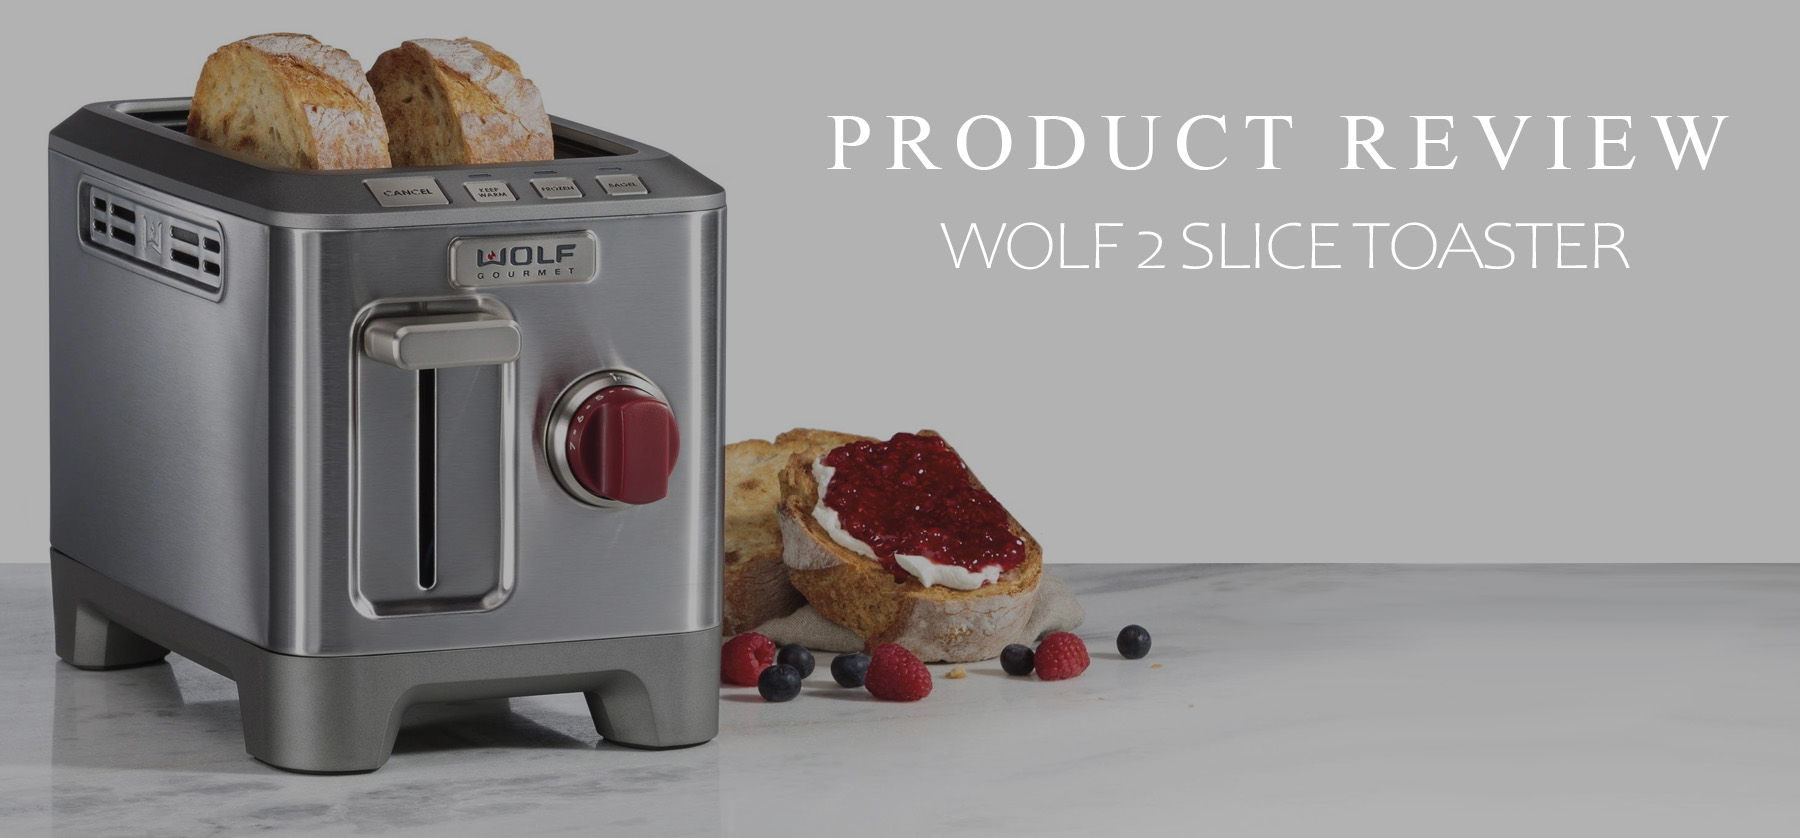 Wolf 2 slice toaster product review banner 1